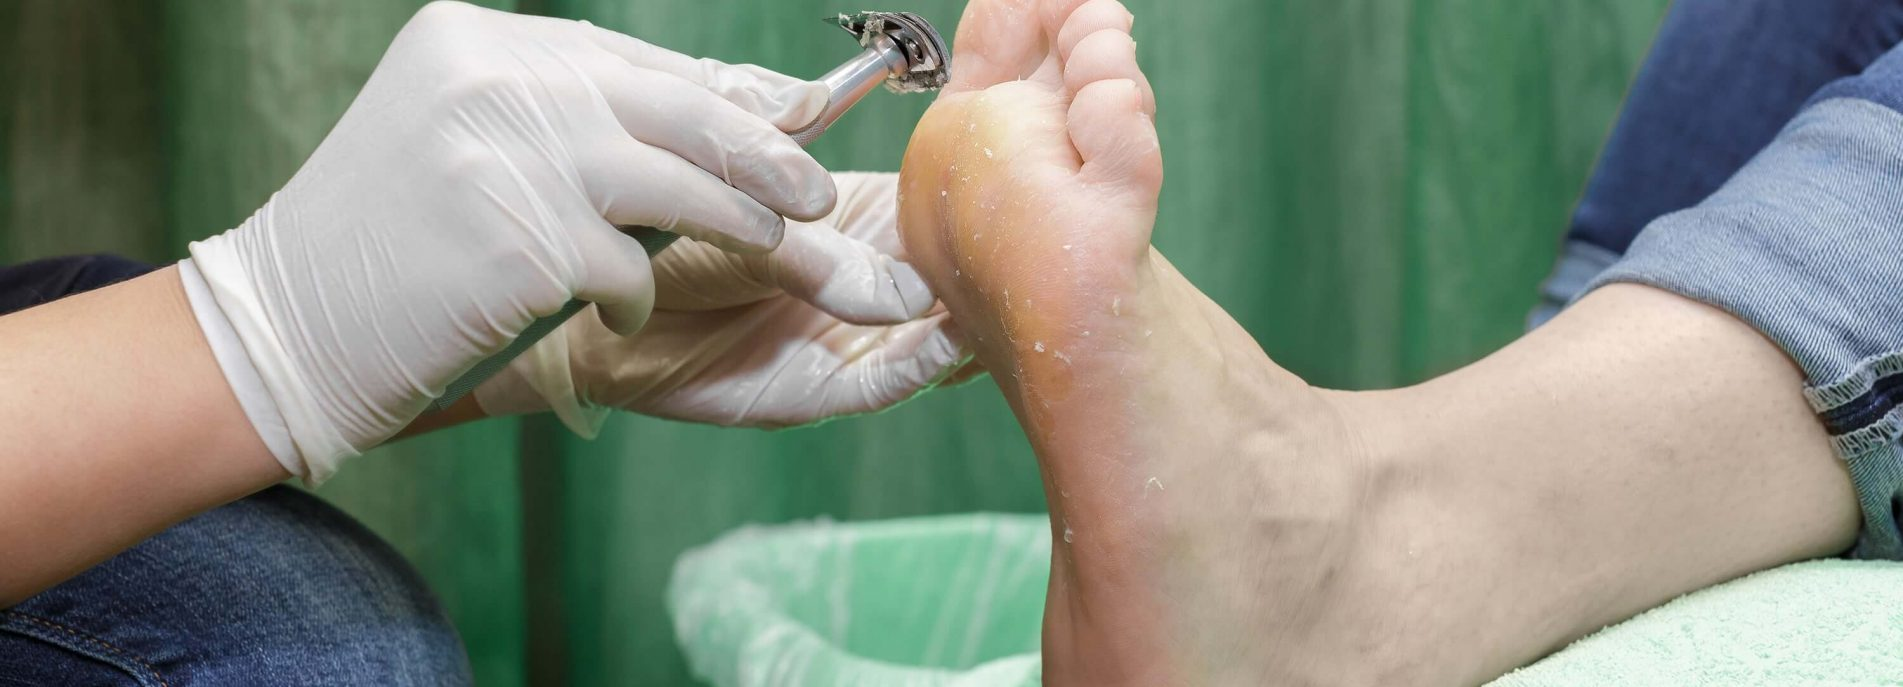 How to treat corns on feet: Home and medical remedies